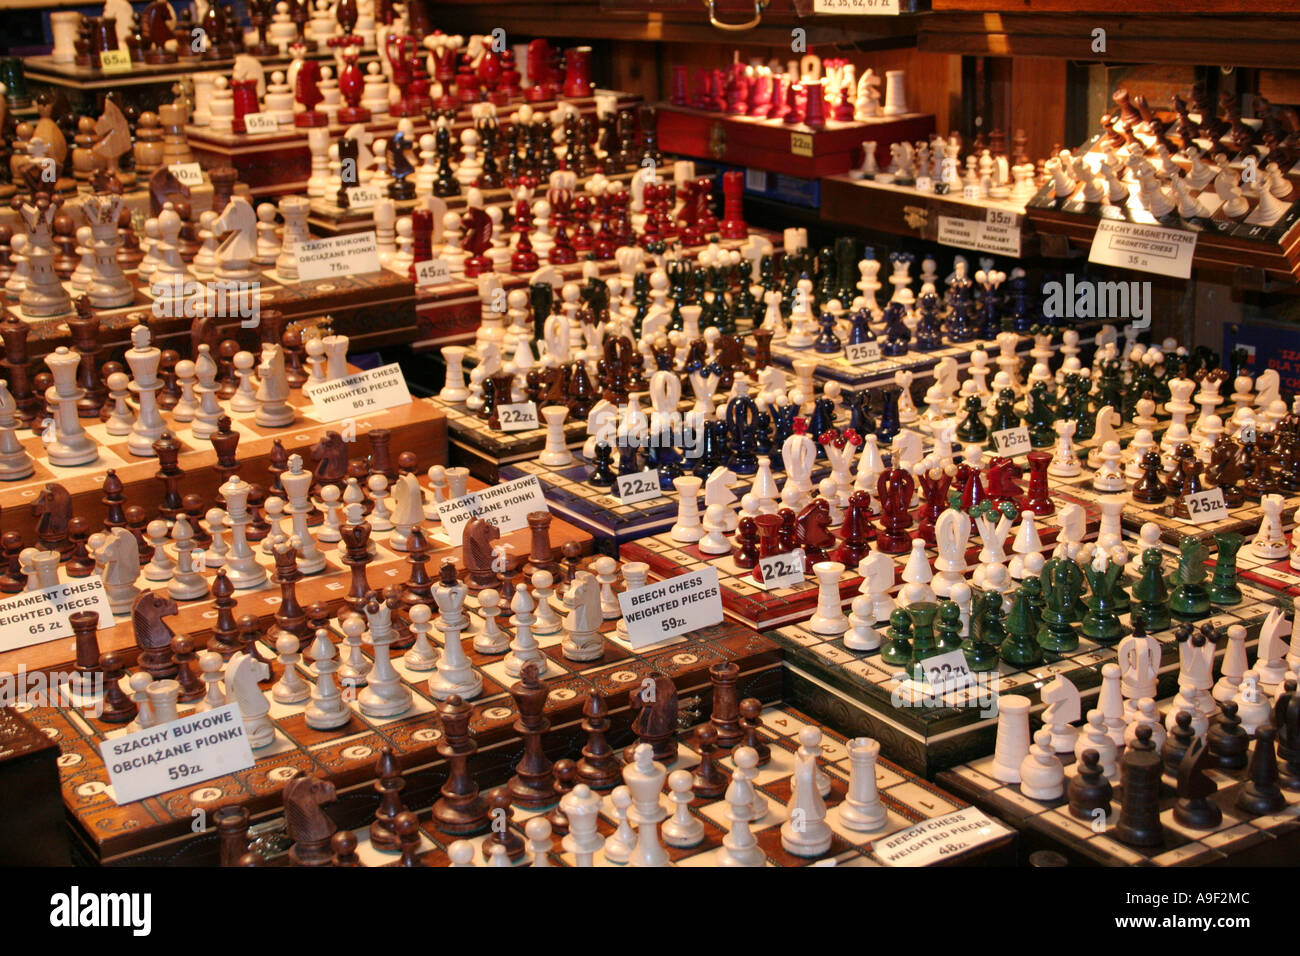 Chess pieces for sale in the Cloth Hall, market, Krakow